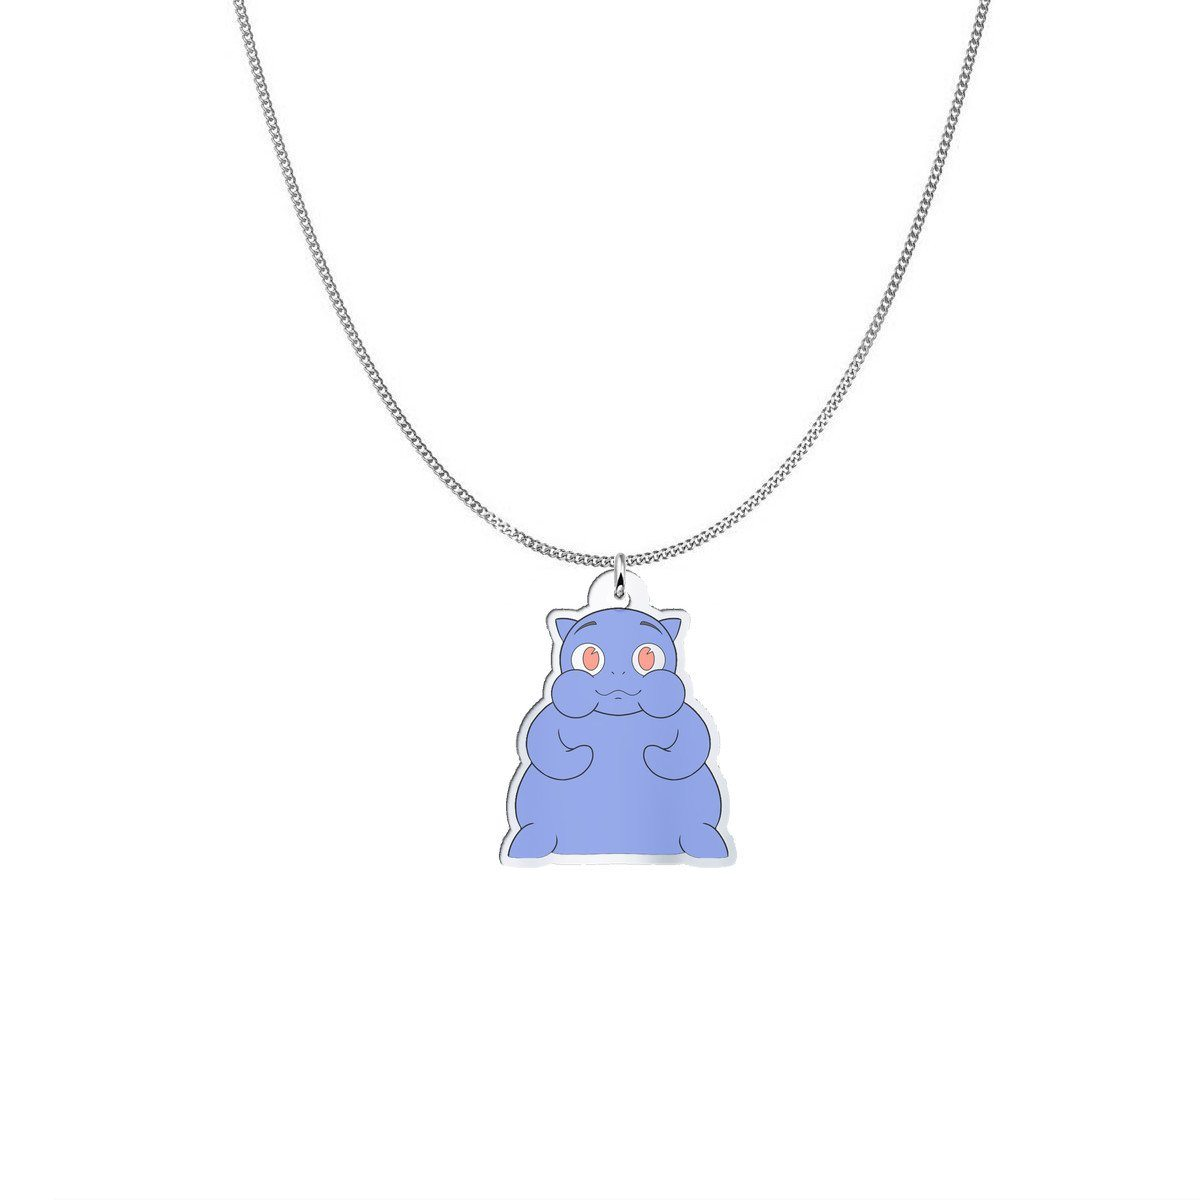 Pendant - Gravey The Graves' Disease Monster Silver Necklace